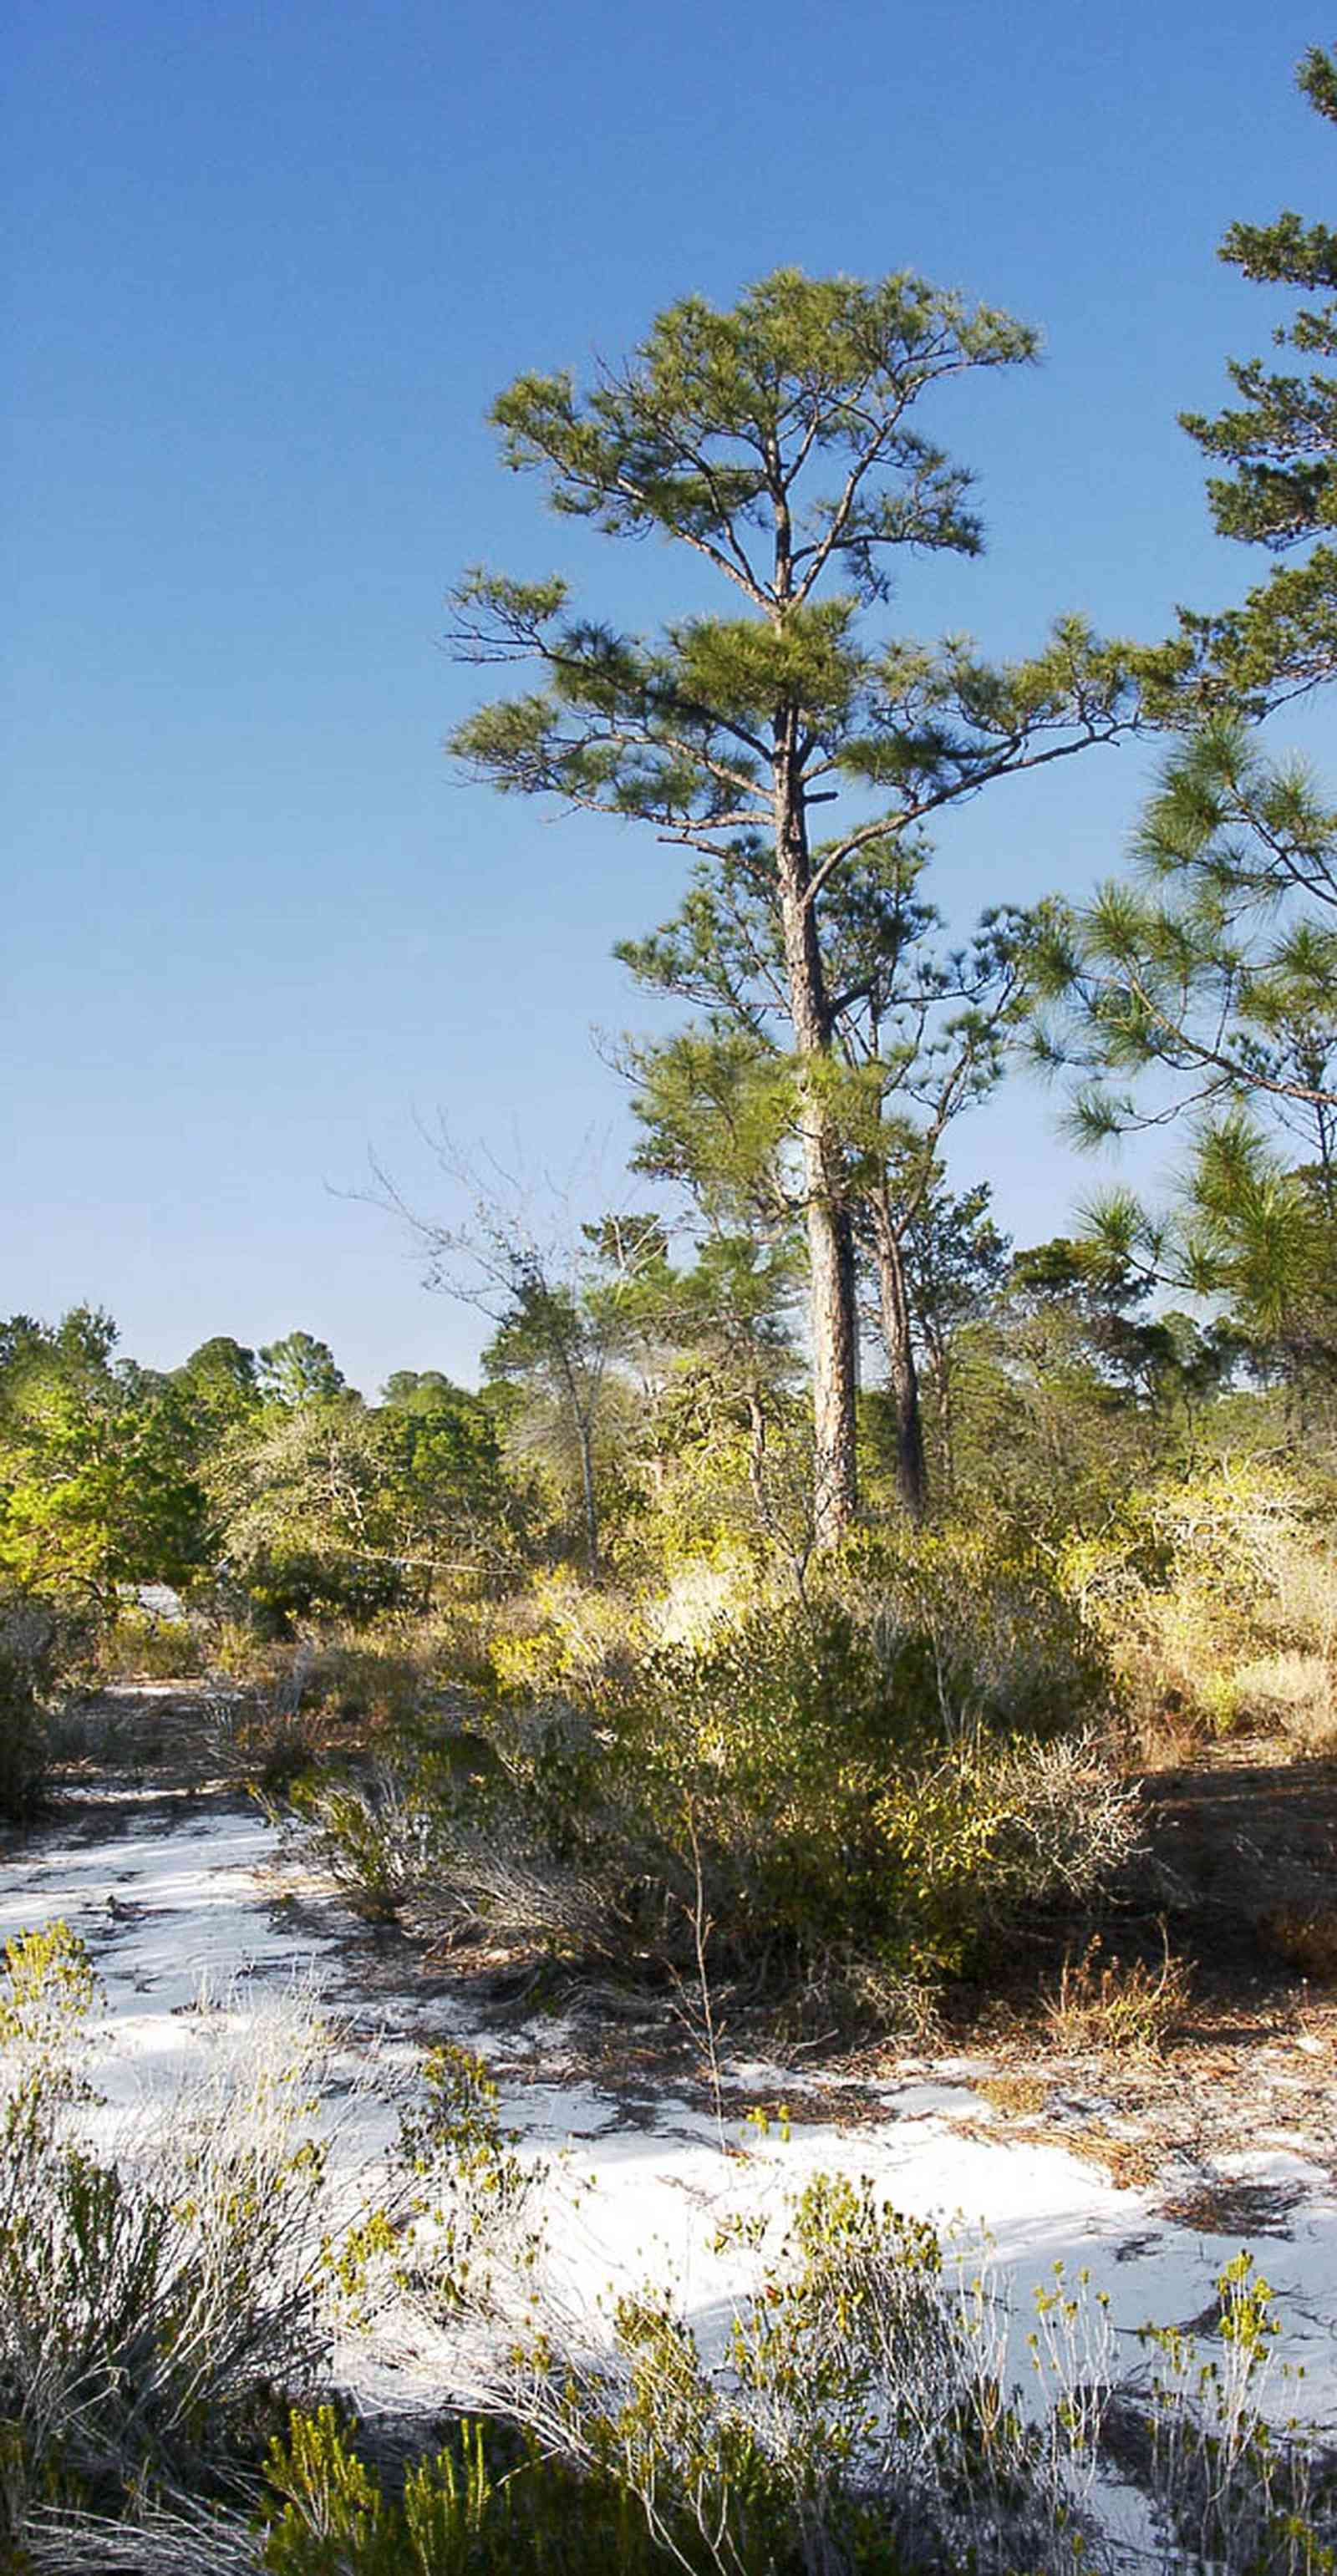 Perdido-Key:-Pine-Barrens_00b.jpg:  sand scrub pine forest, gulf coast, sand dunes, key, peninsula, florida rosemary, short-leaf pine tree